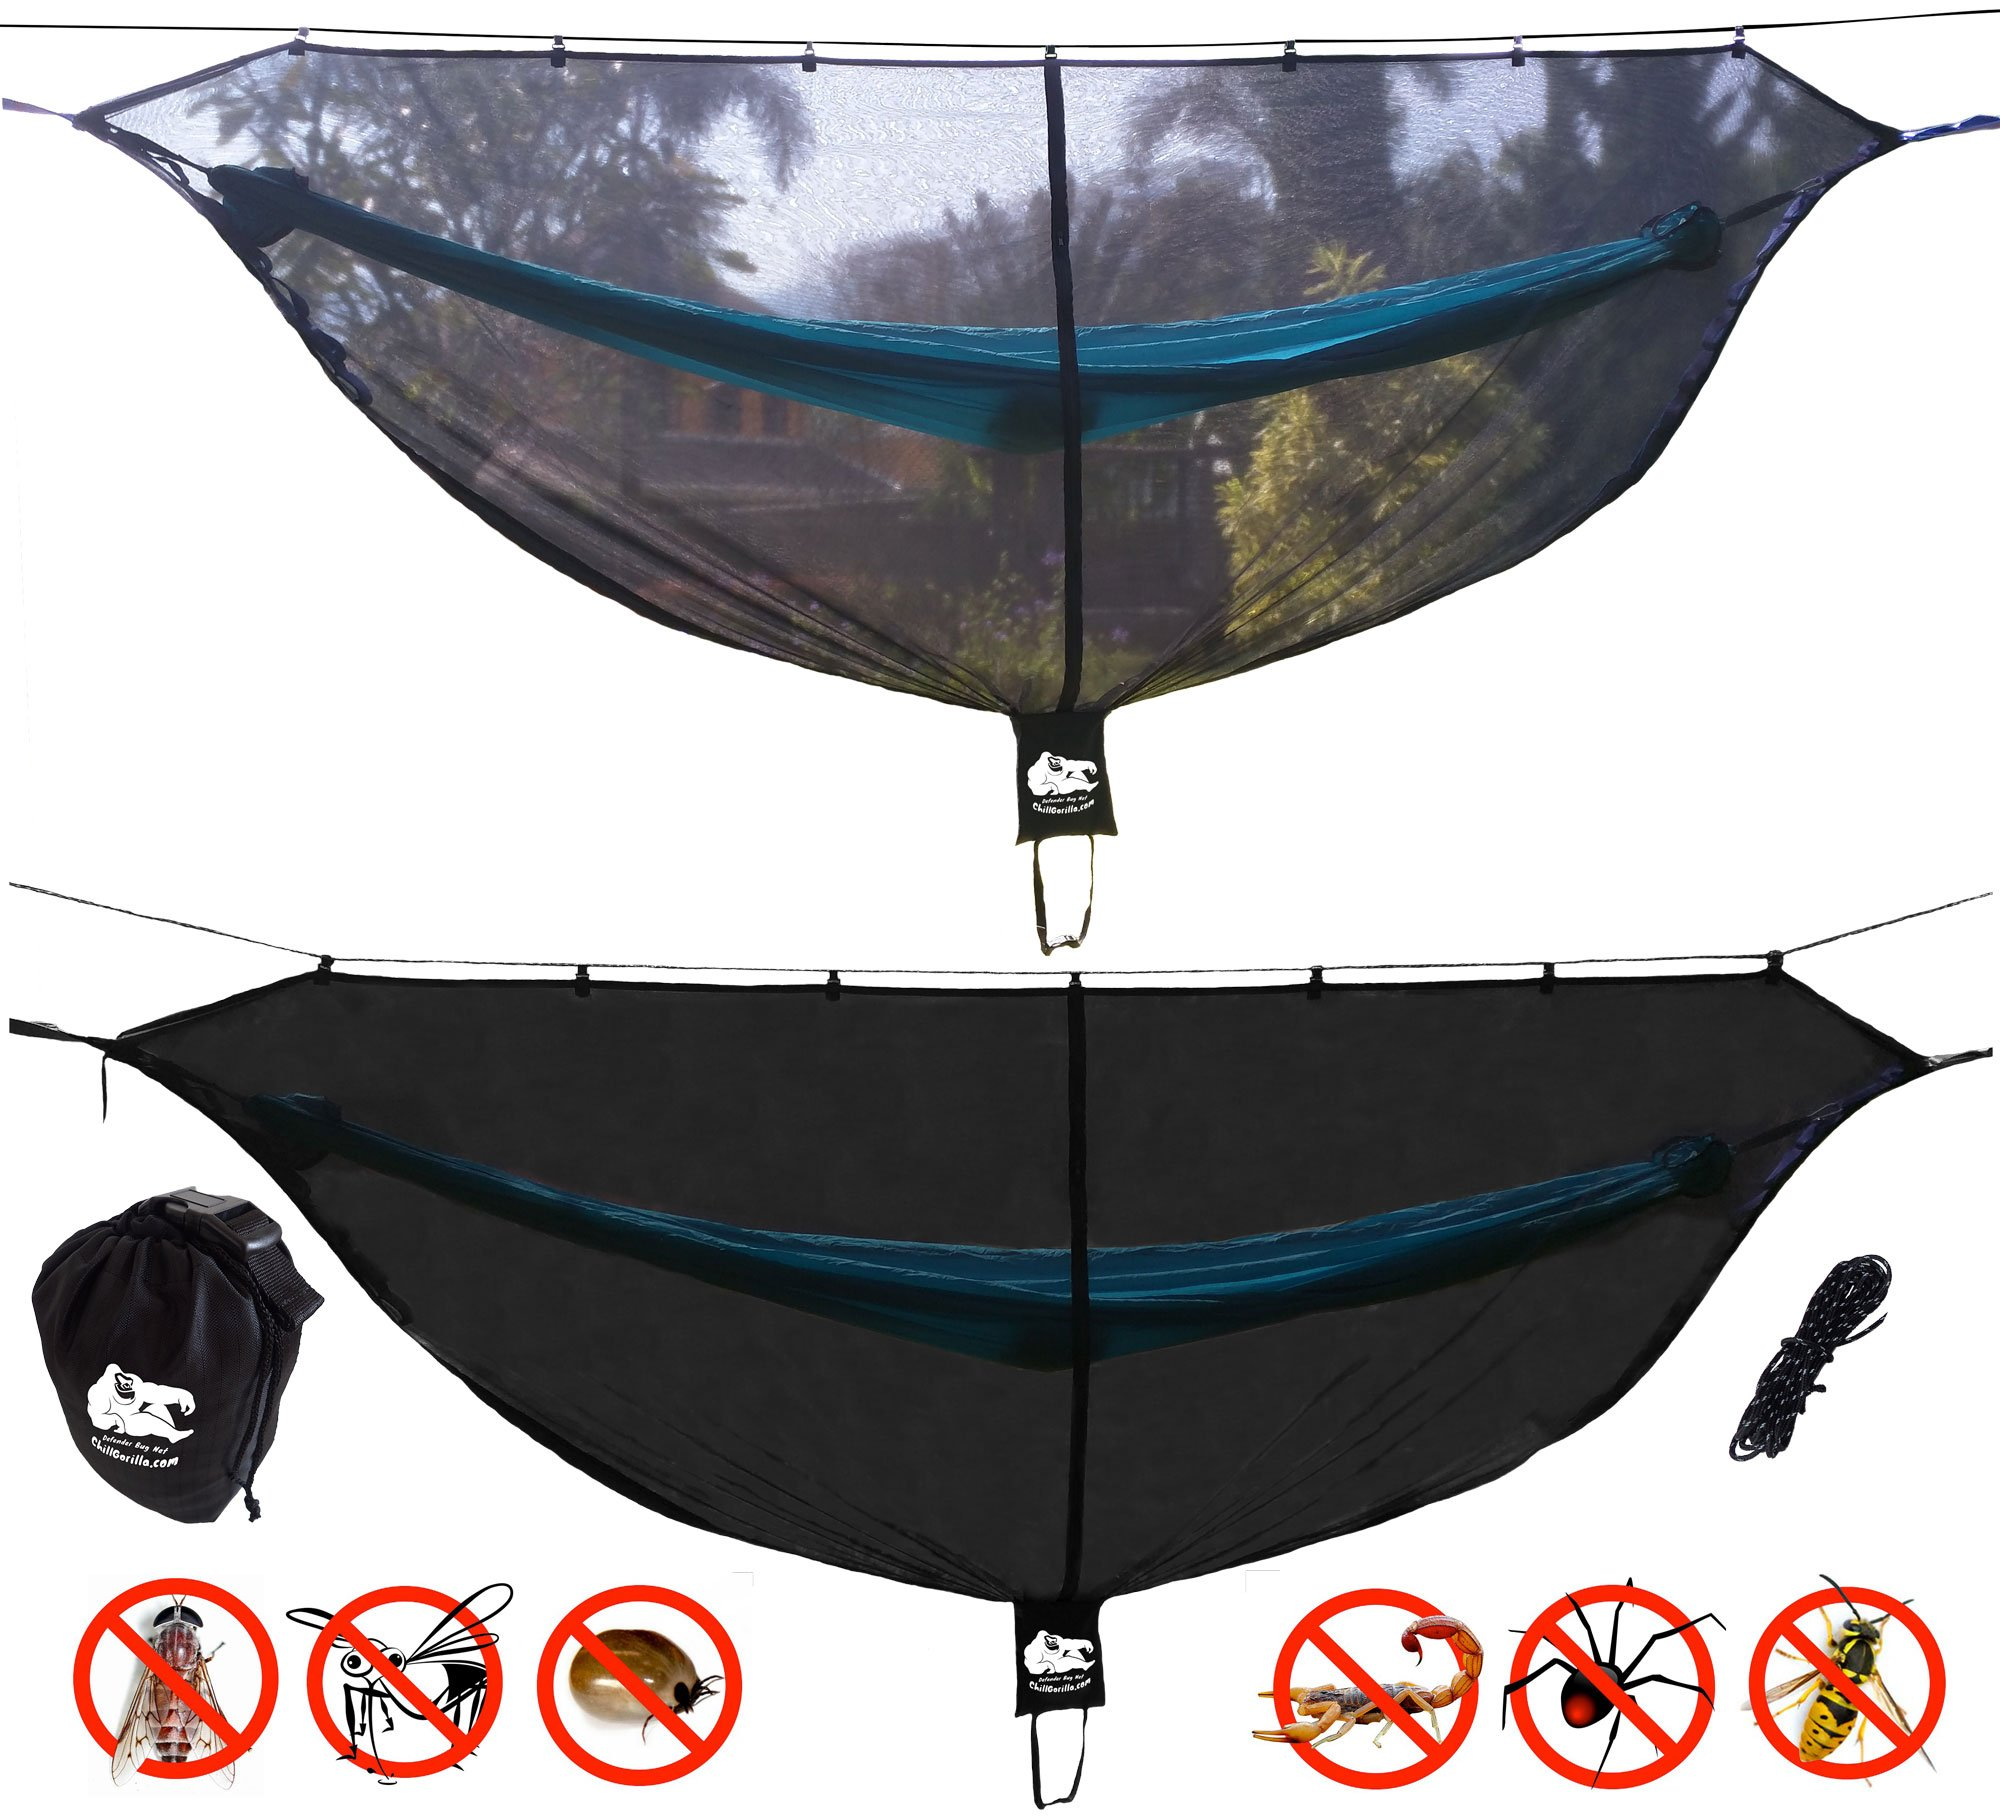 Chill Gorilla Defender 11' Hammock Bug Net Stops Mosquitos, No See Ums & Repels Insects. Compact, Lightweight. Eno Accessory. Fast Easy Setup. Size 132'' x 51'' by Chill Gorilla